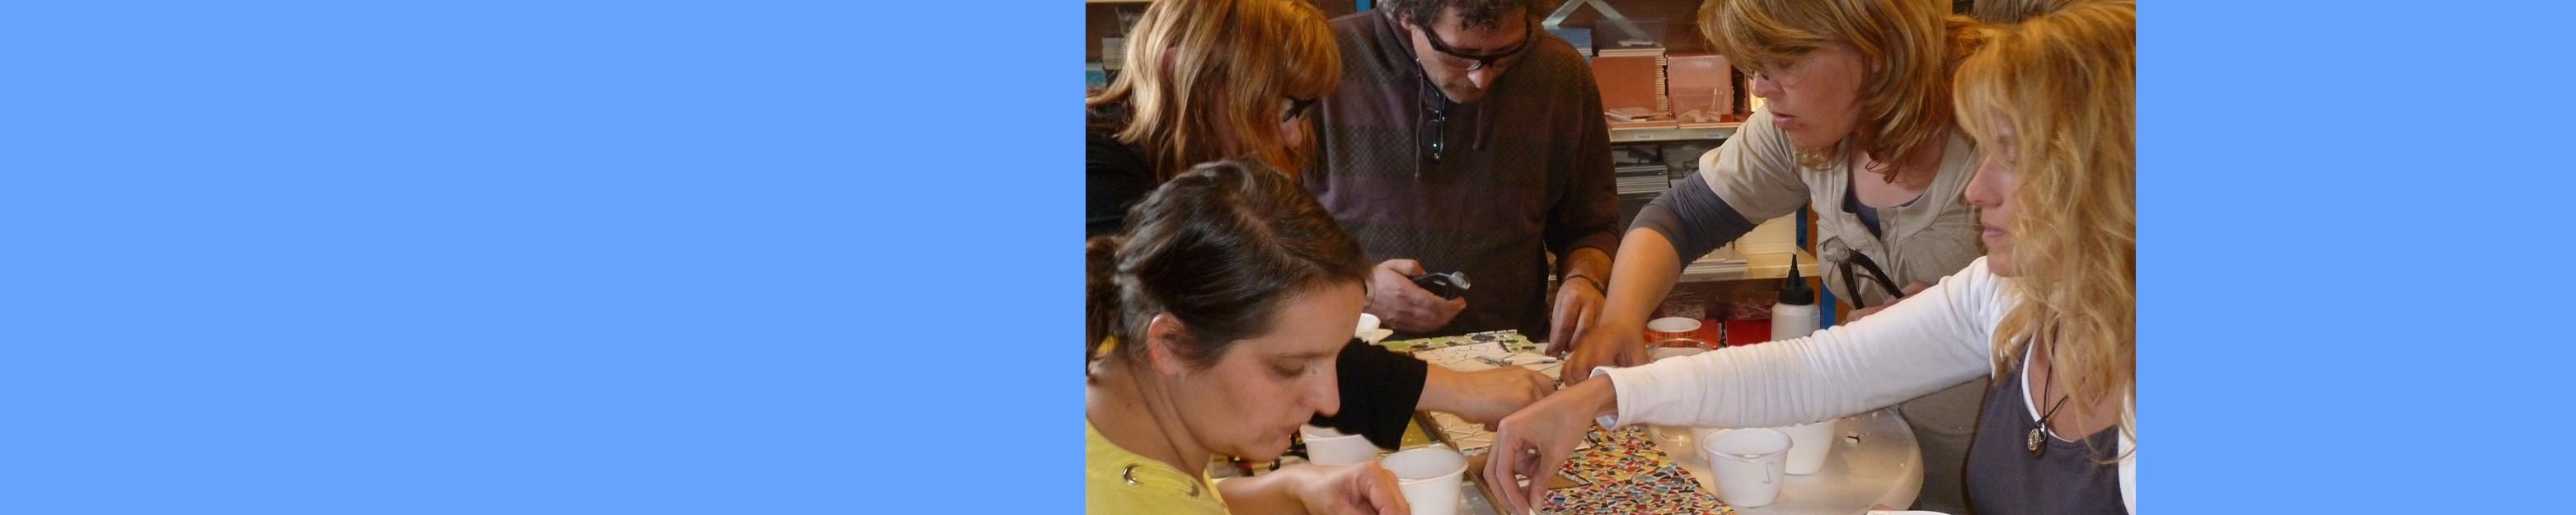 Teambuilding arrangement, uw teambuilding combineren met High Tea, Lunchen, chinees buffet